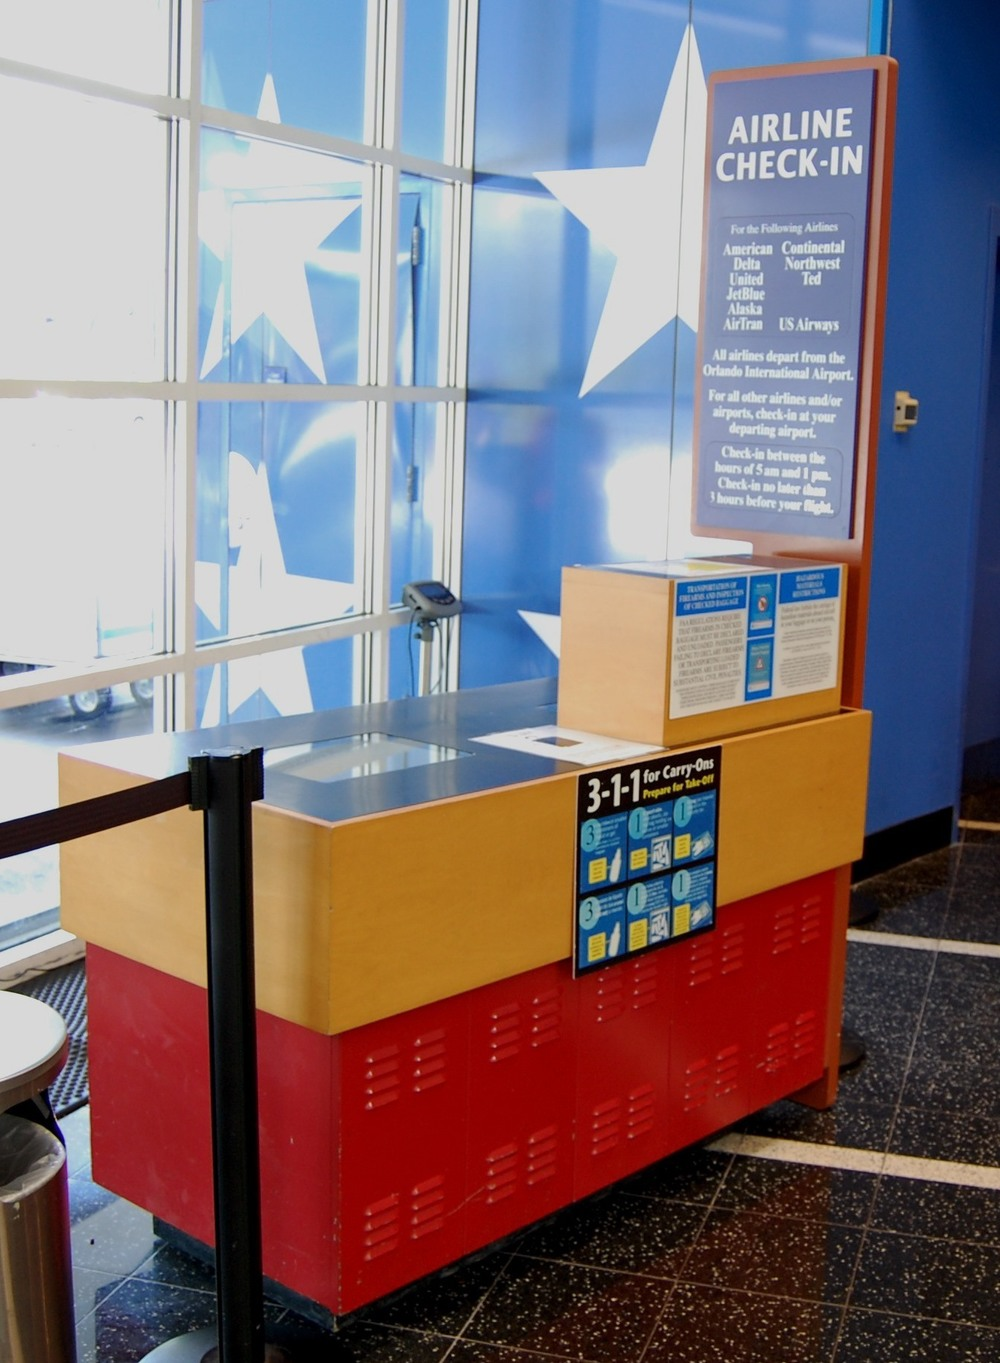 Airline check-in desk at the Disney World hotels